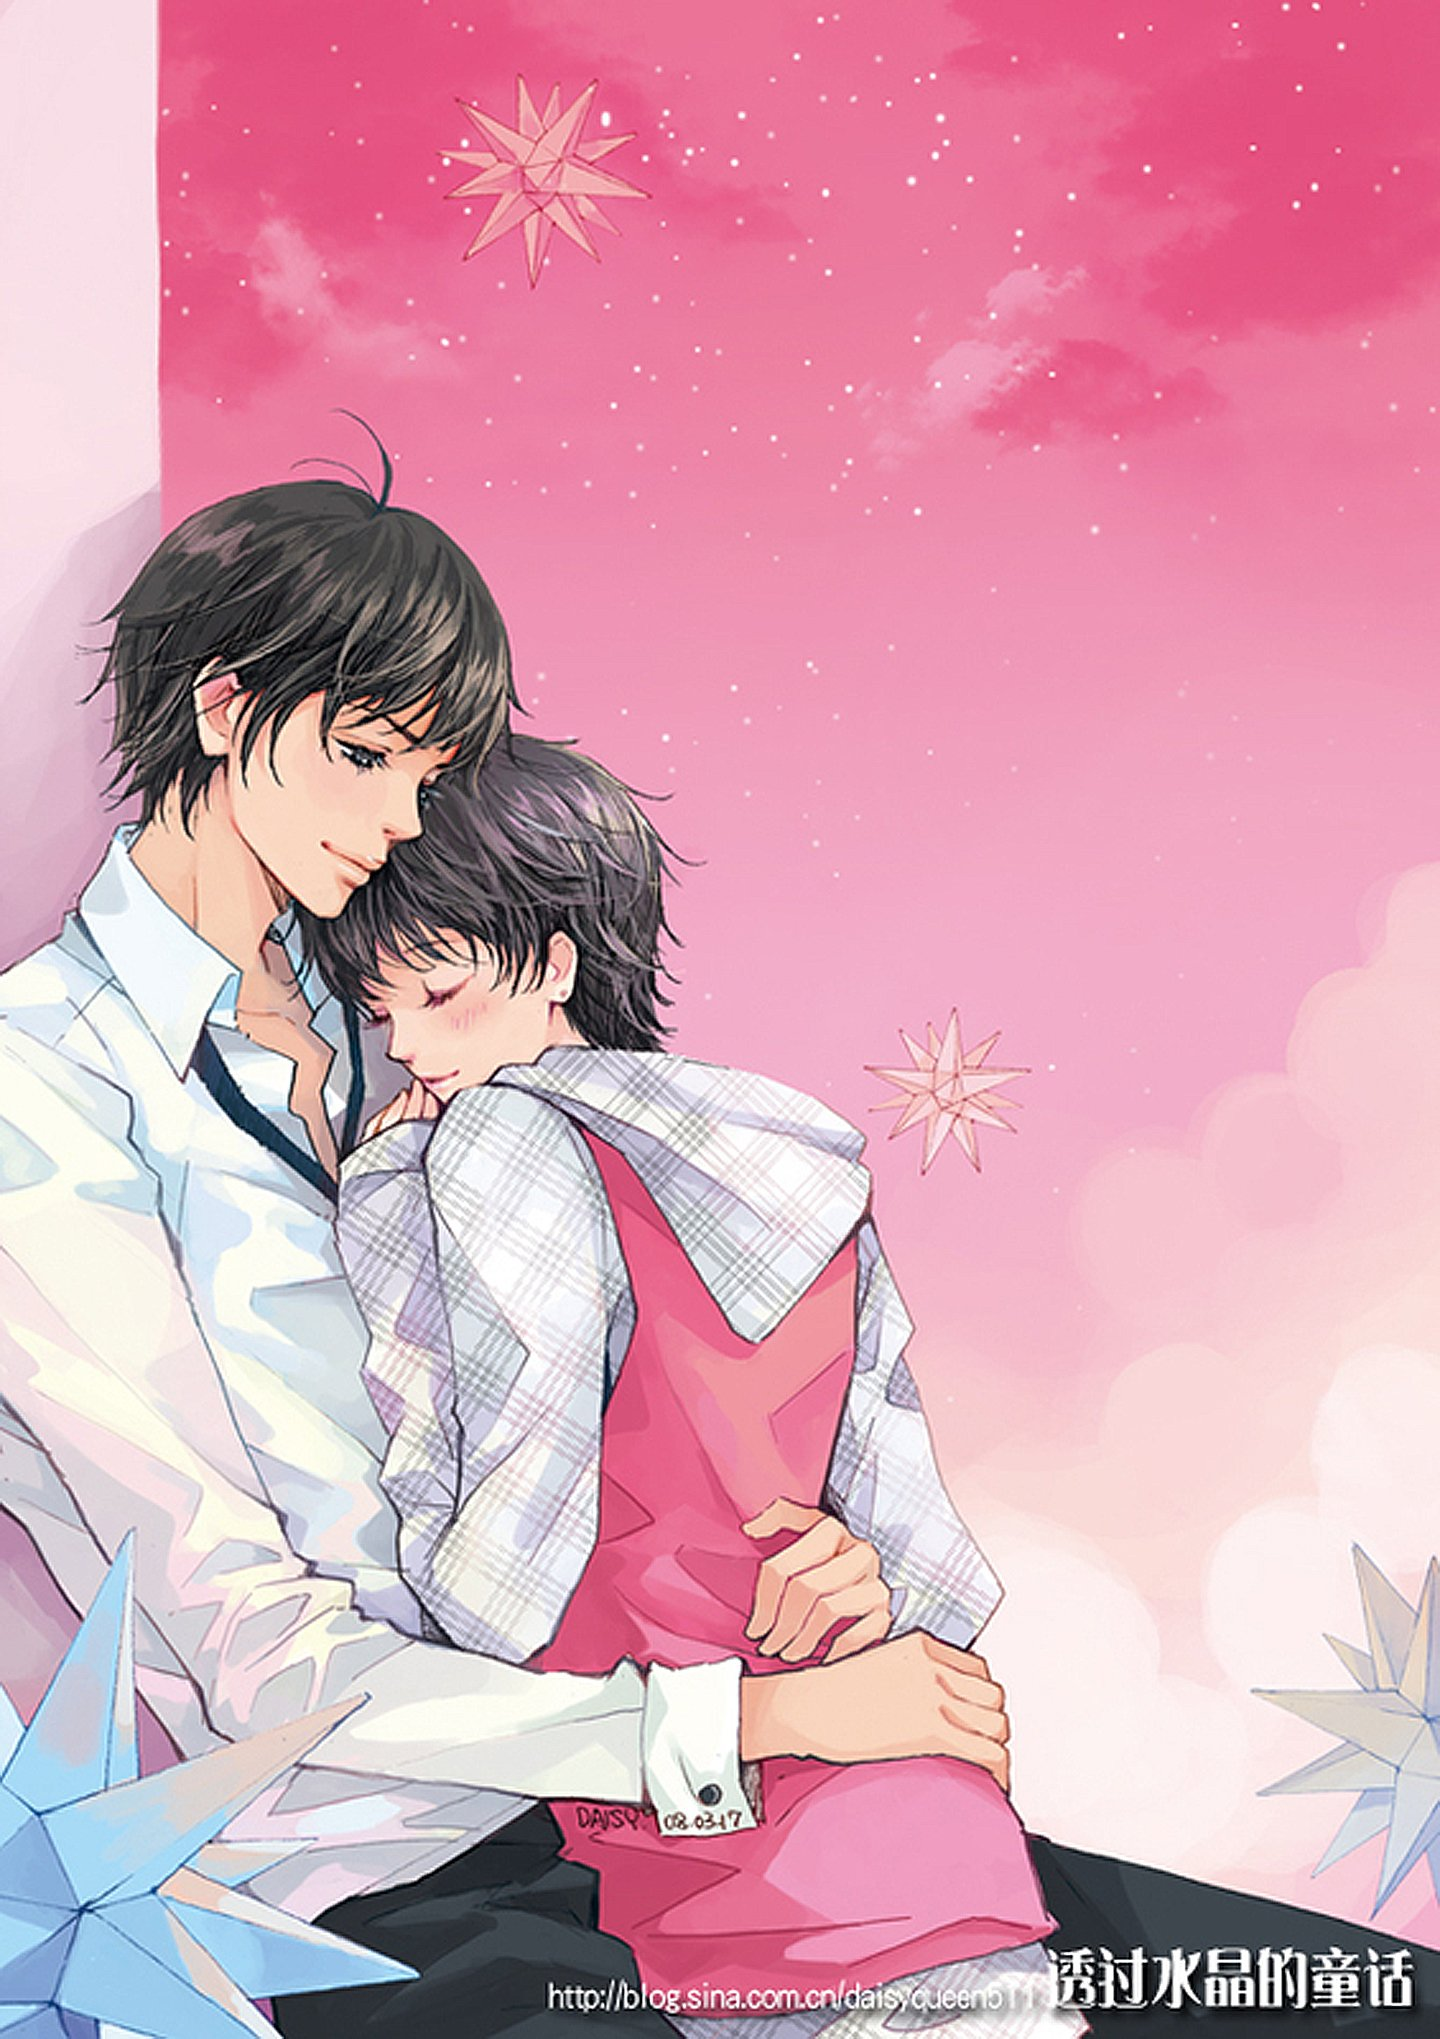 Cute Couple Wallpaper Download Love Couple Short Hair Pink Pretty Anime Stars Sky